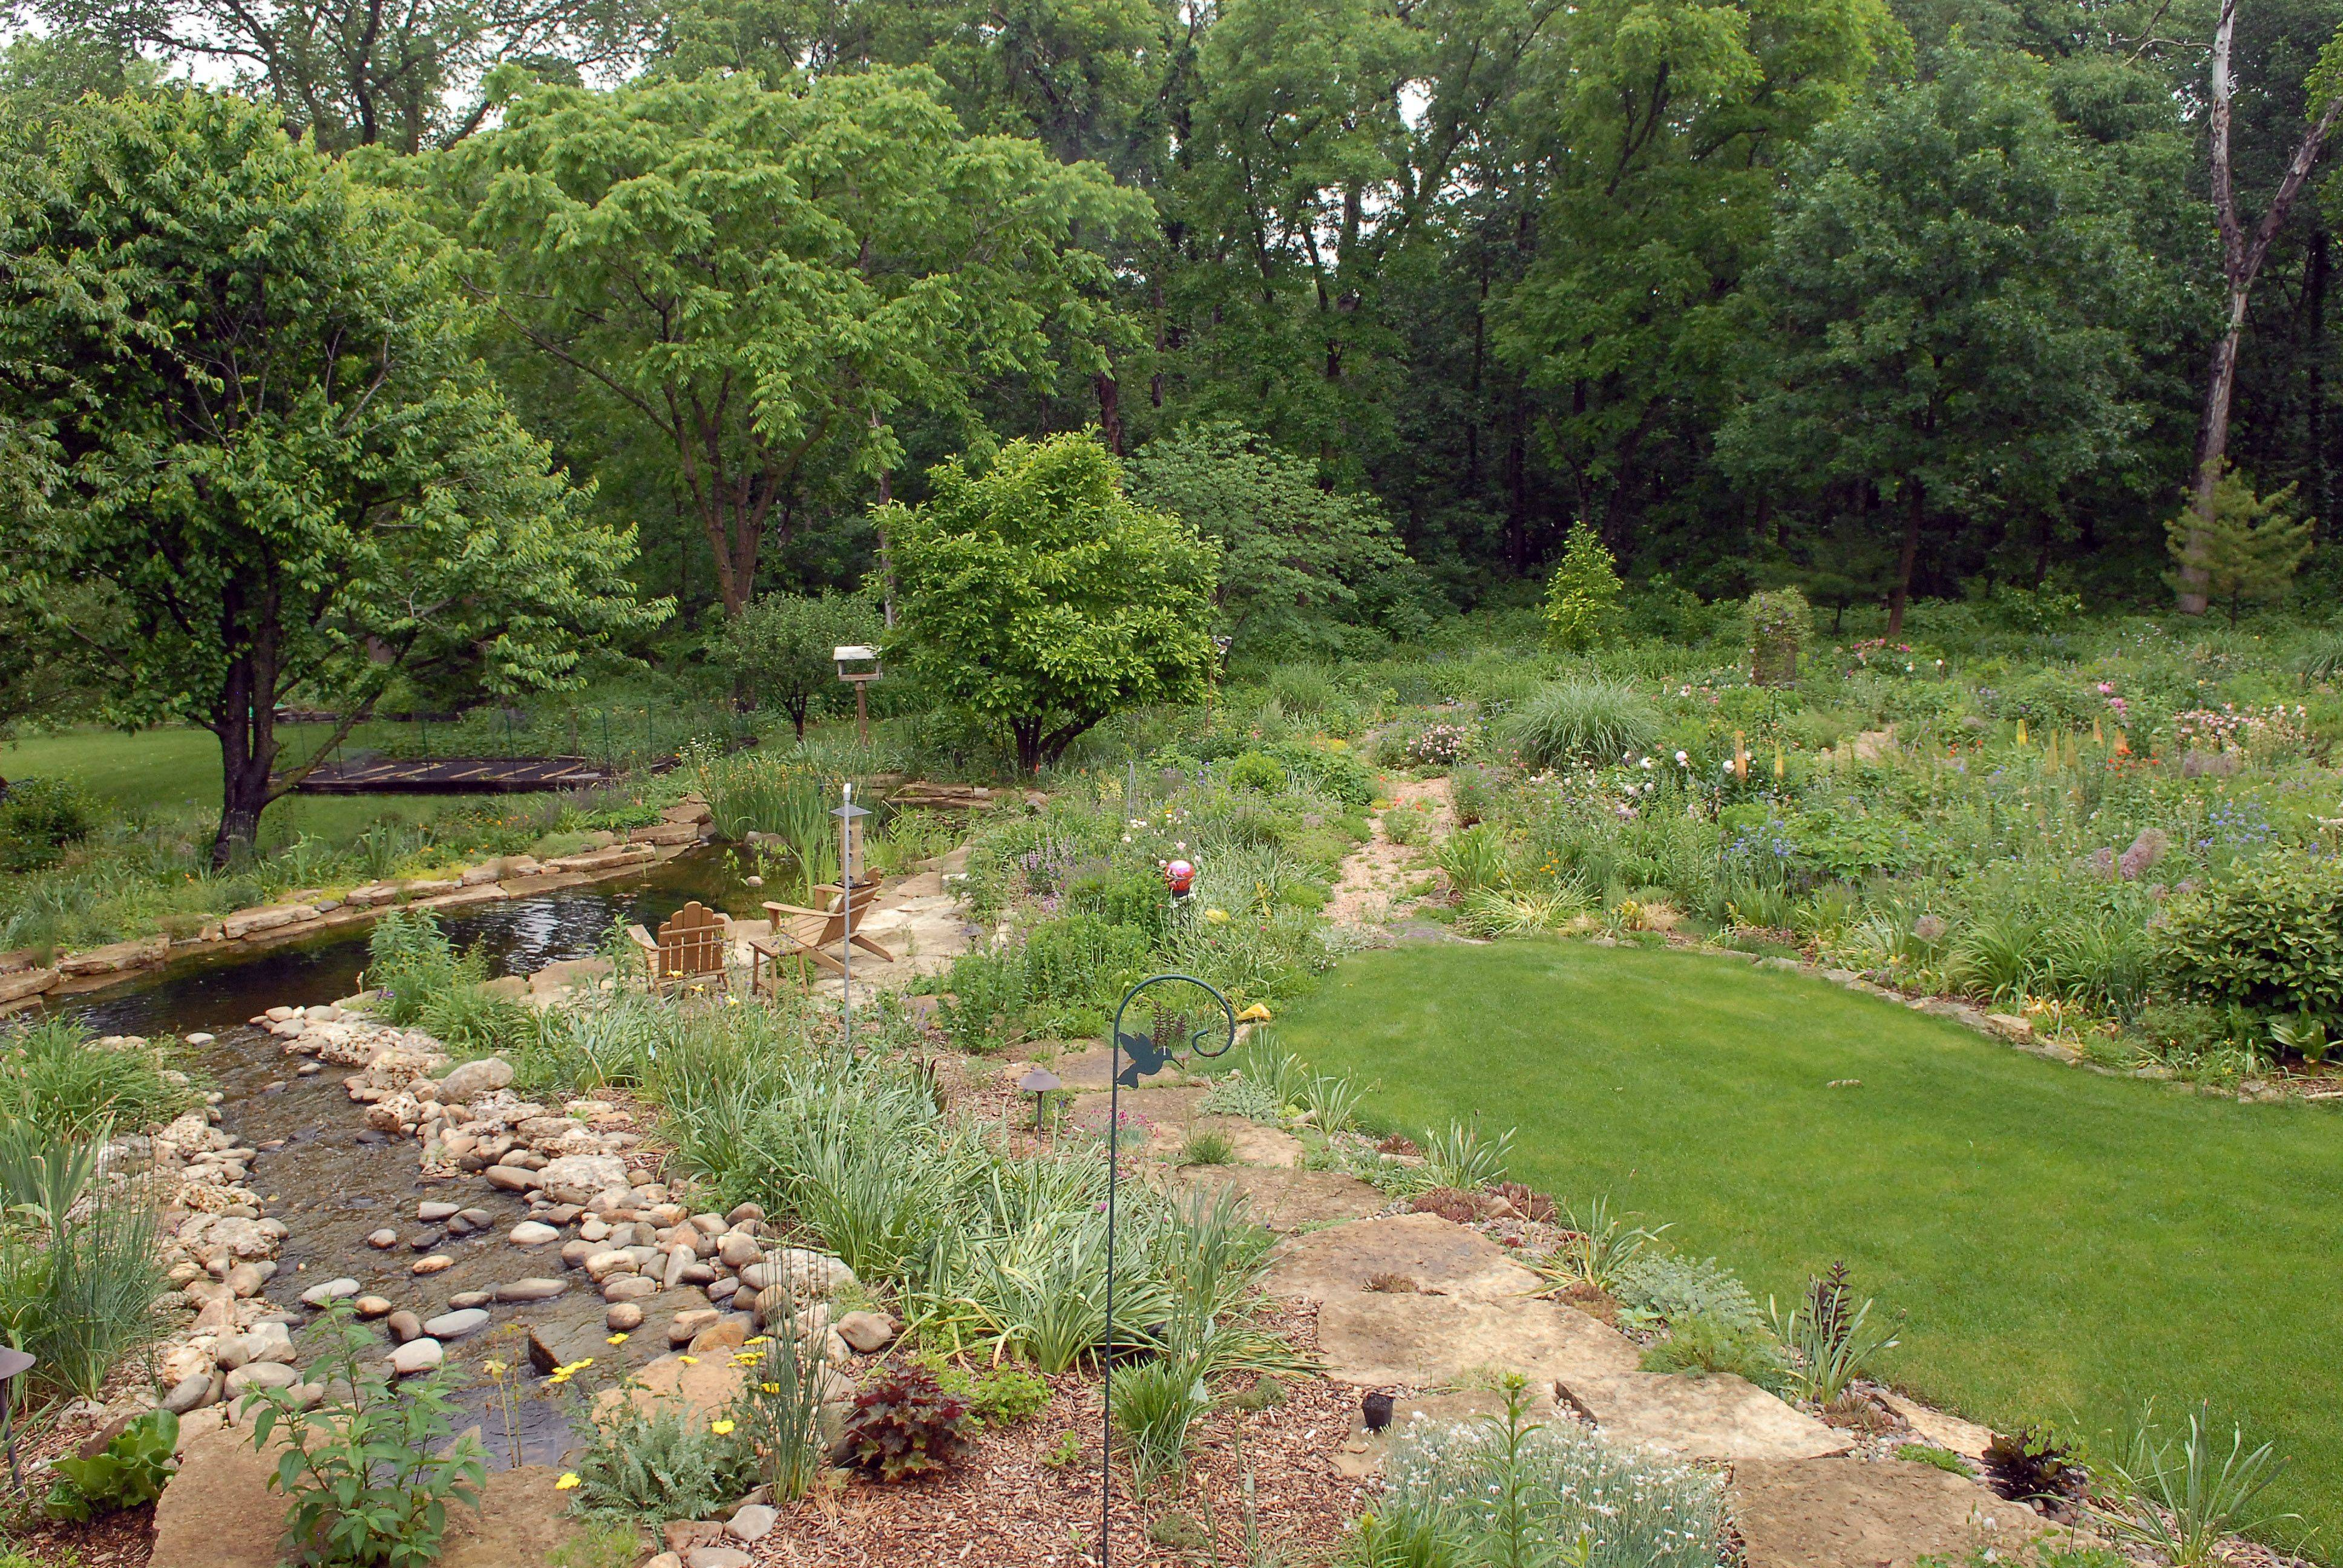 Water features, fruit trees and perennials are highlights of Dee and Bob Raimondi's garden.